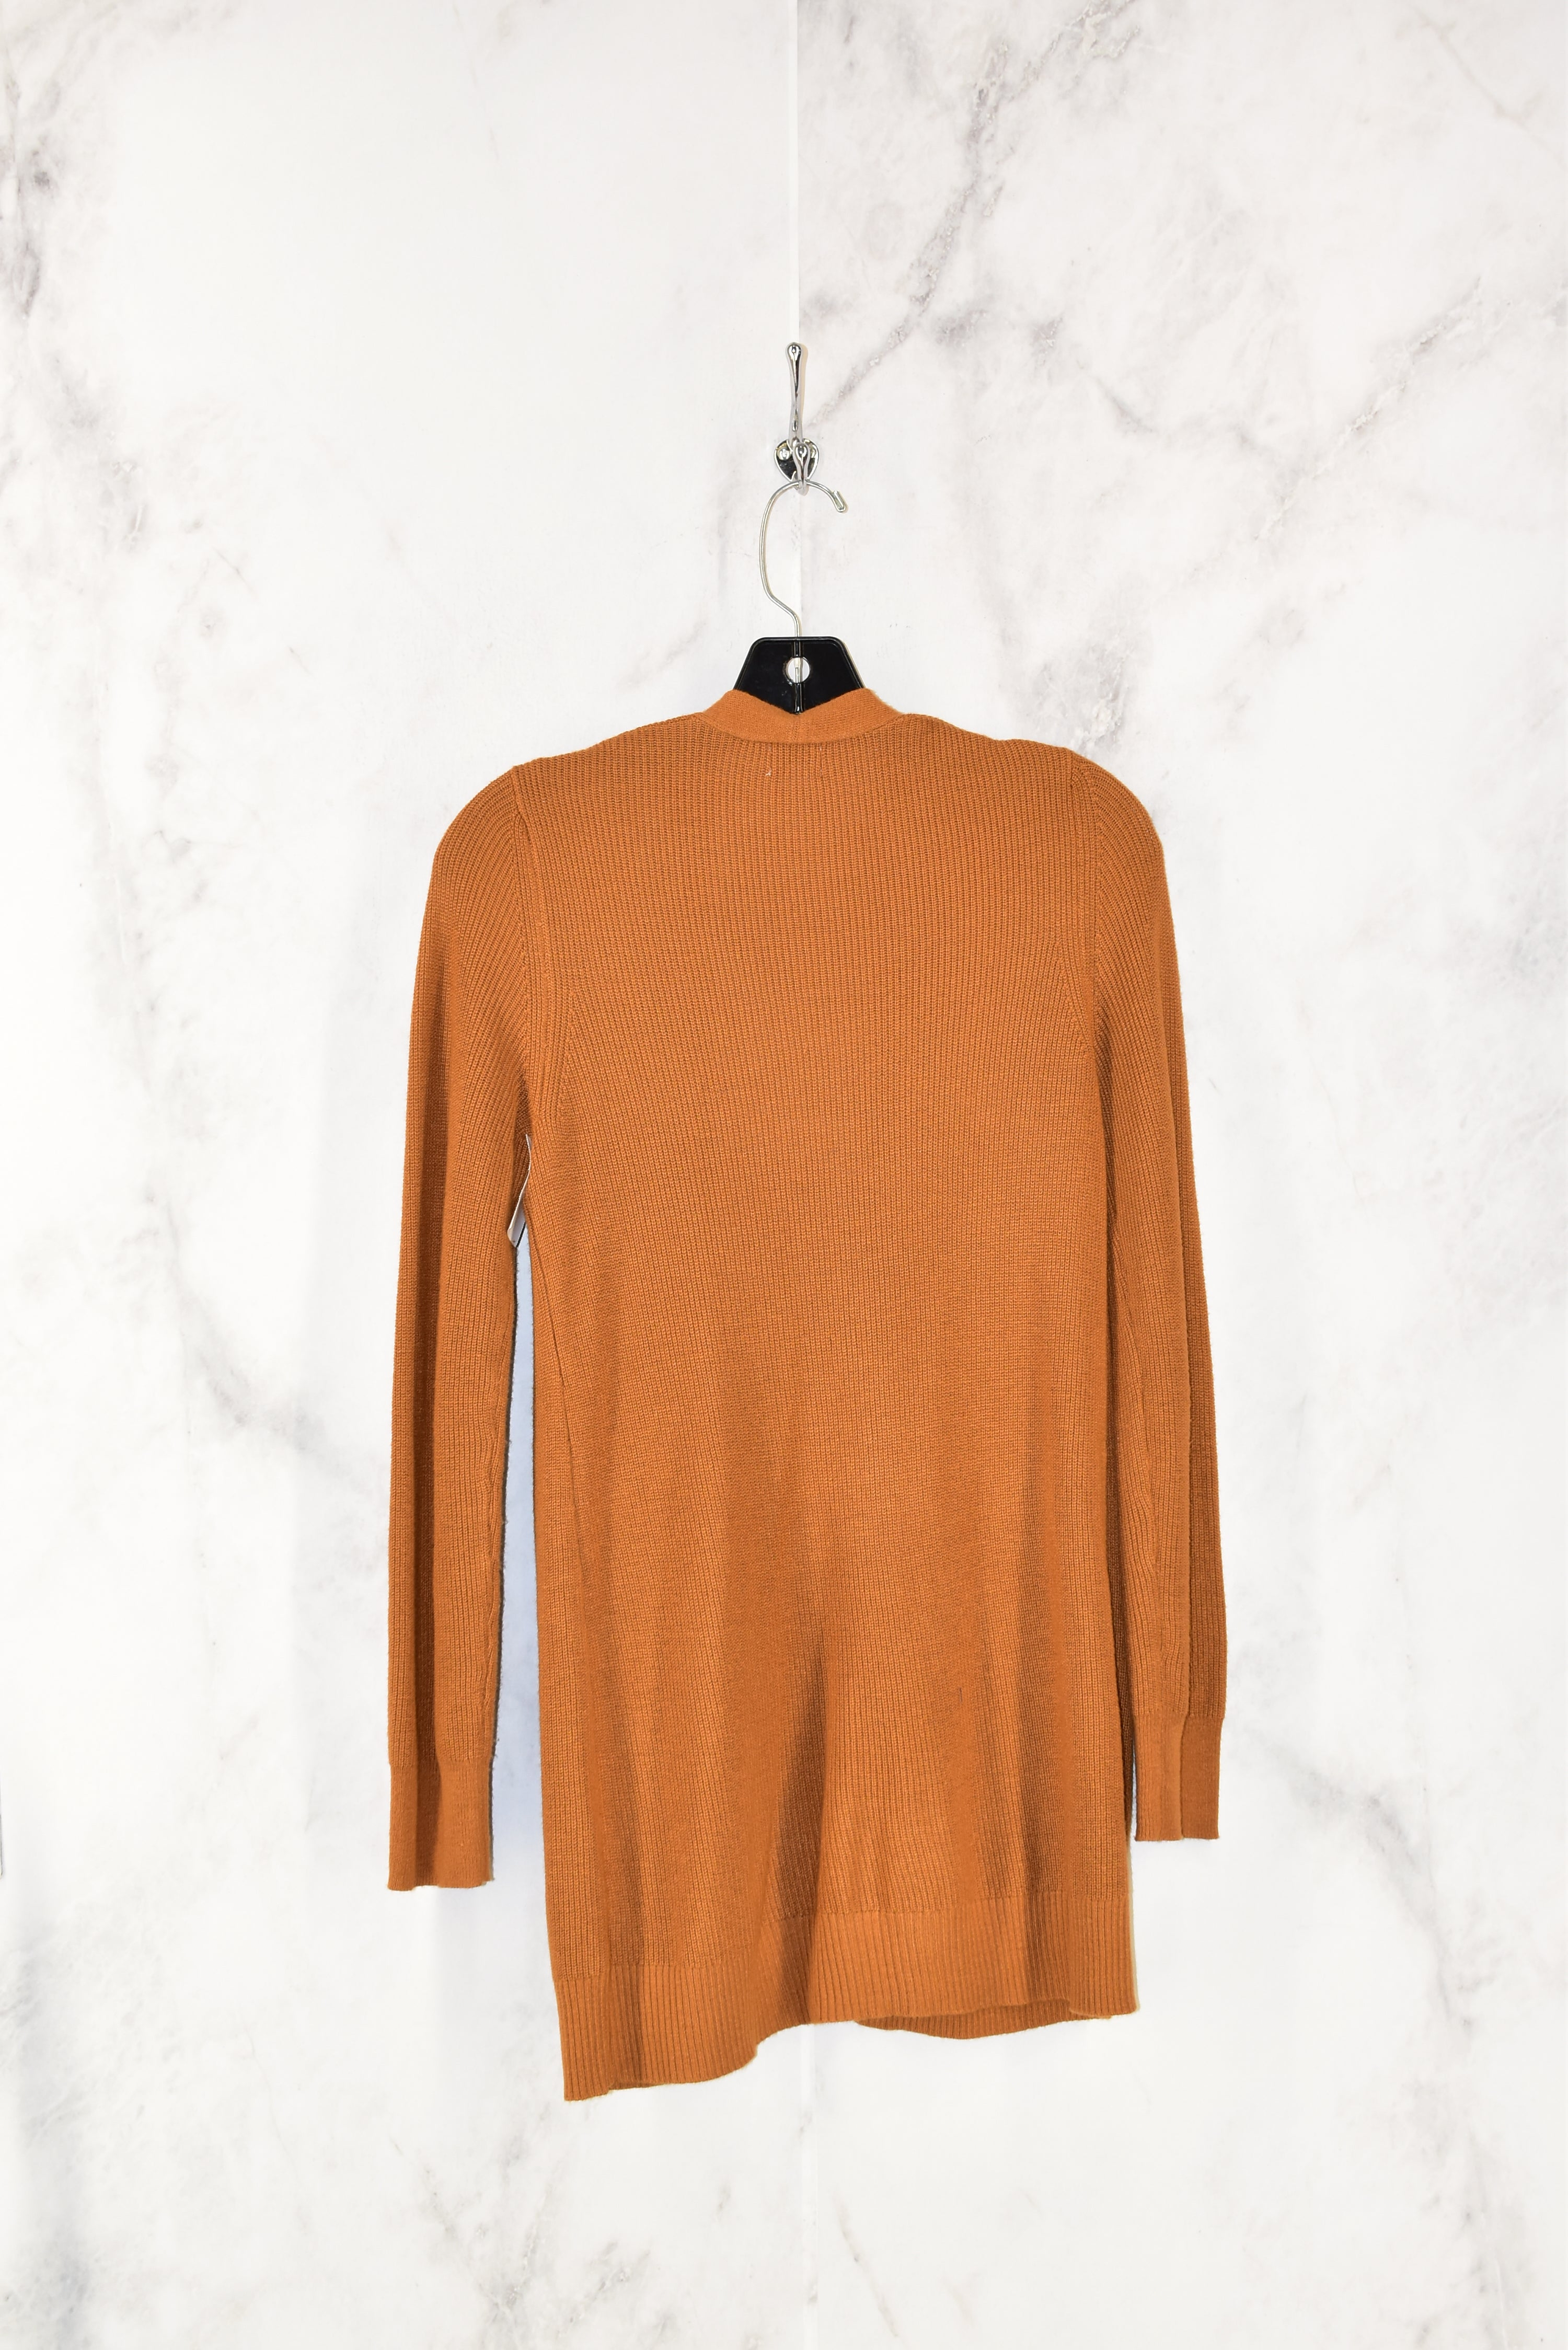 Photo #1 - BRAND: A NEW DAY <BR>STYLE: SWEATER CARDIGAN LIGHTWEIGHT <BR>COLOR: MUSTARD <BR>SIZE: XS <BR>SKU: 186-186106-7341